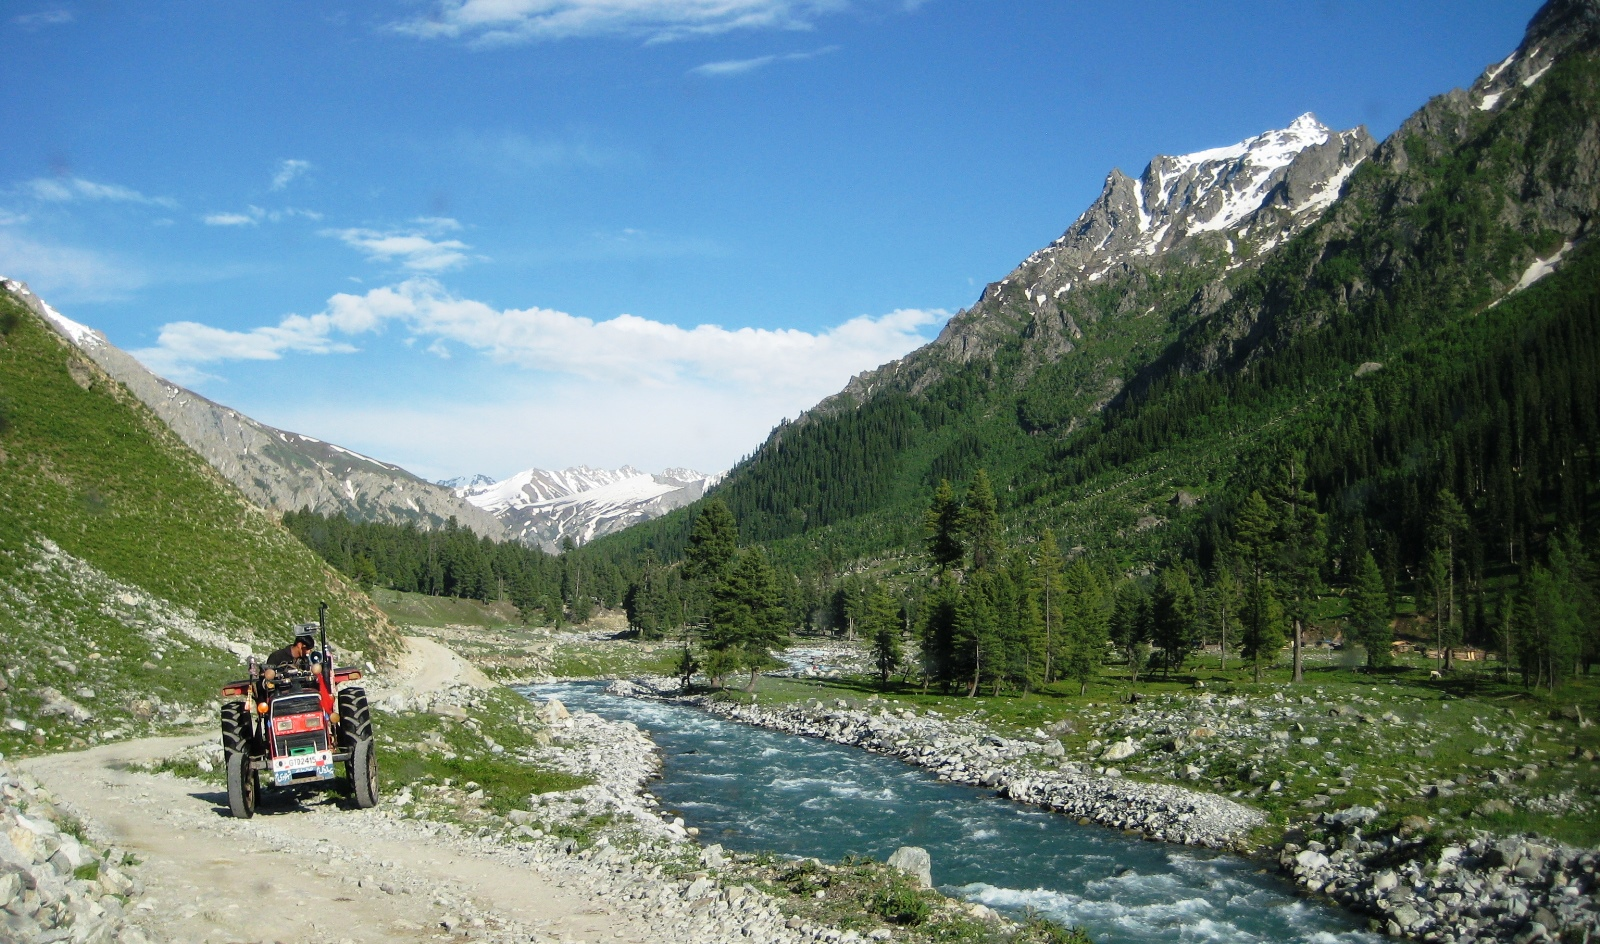 The road to Minimarg